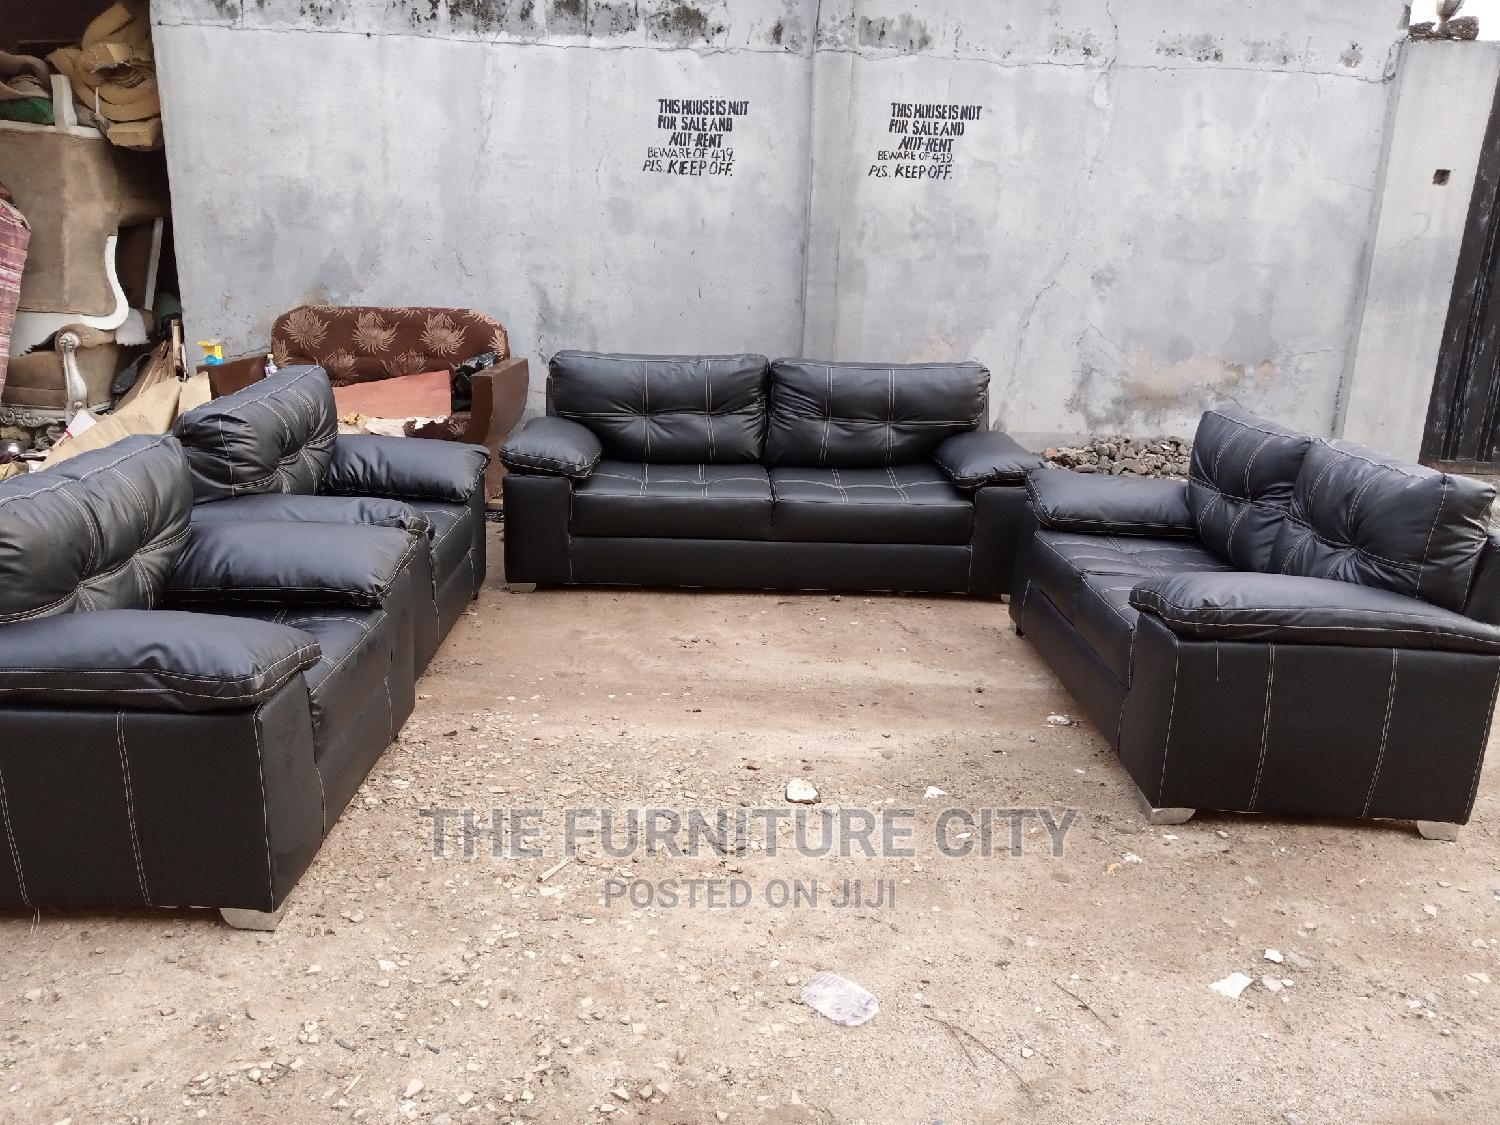 Full 7 Seater Leather Living Room Sofa   Furniture for sale in Ikeja, Lagos State, Nigeria